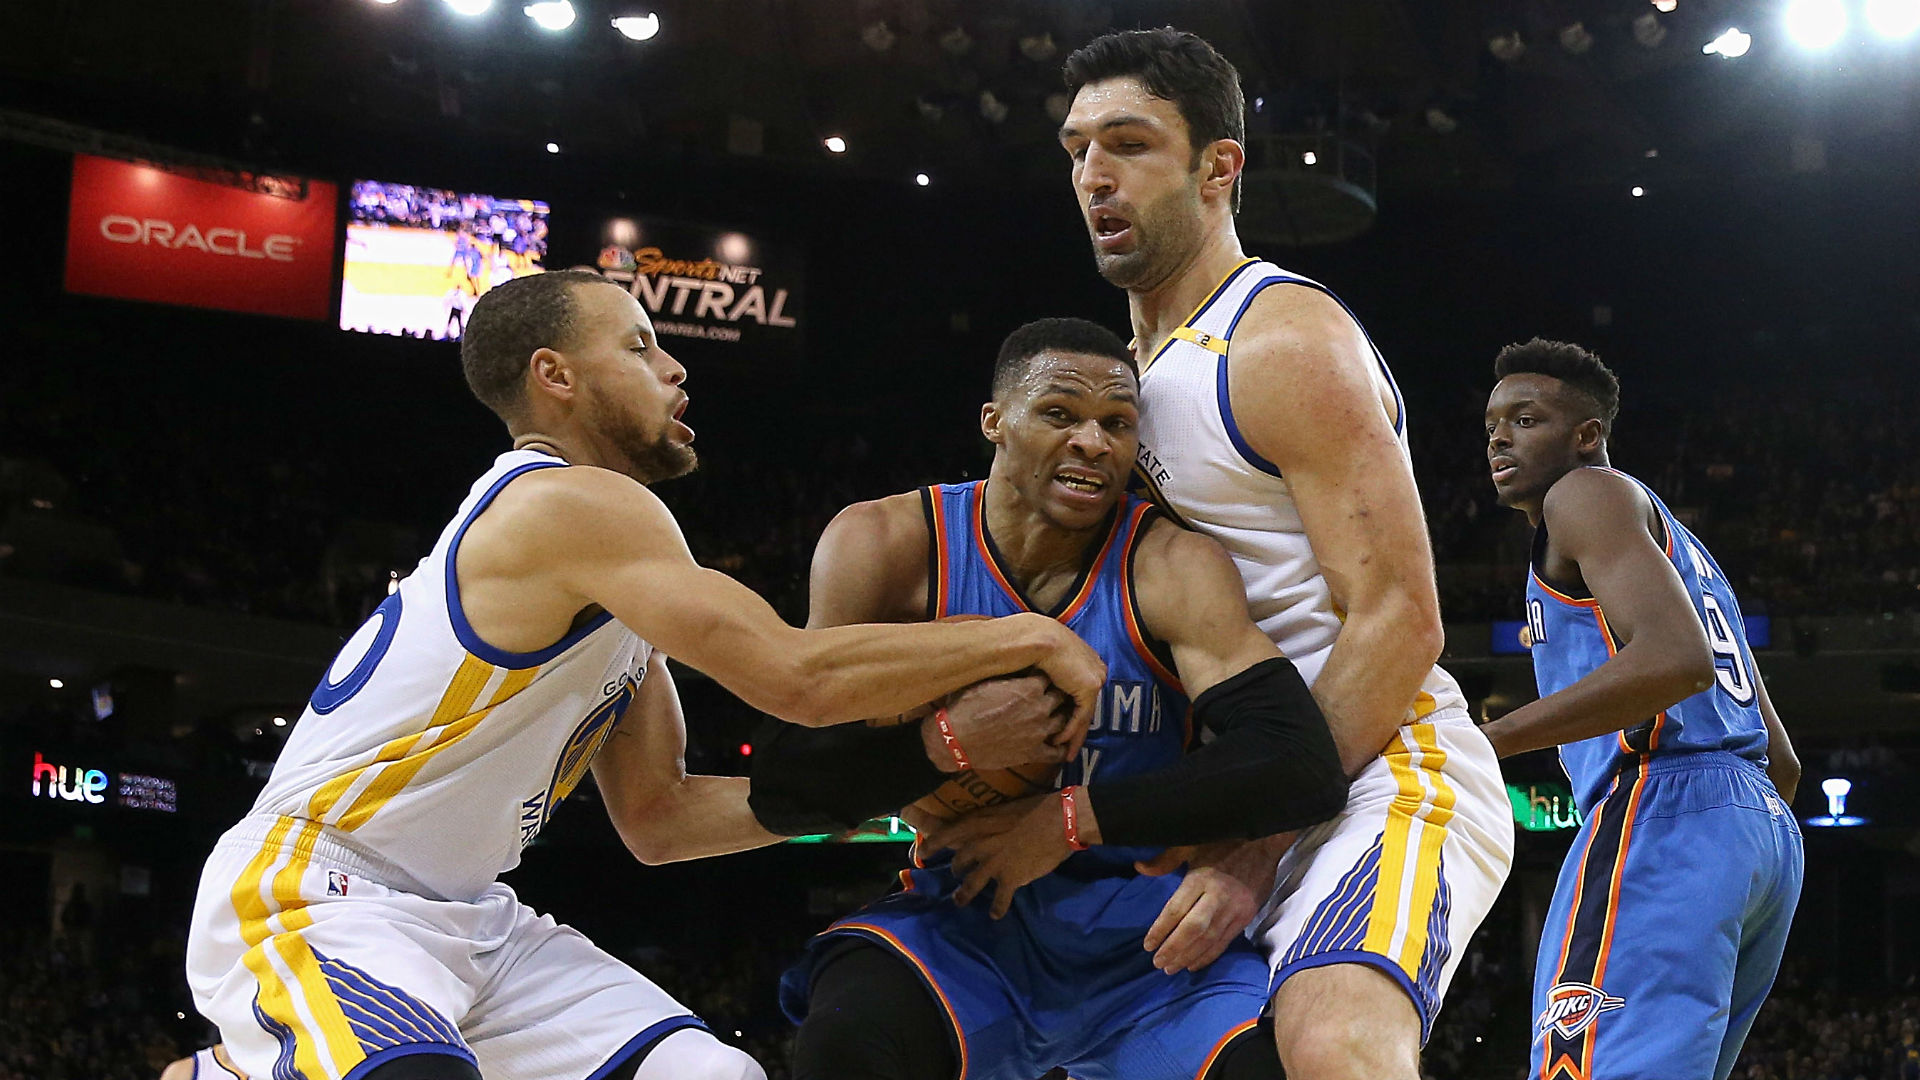 Zaza Pachulia dismisses claims of him being dirty as 'childish'